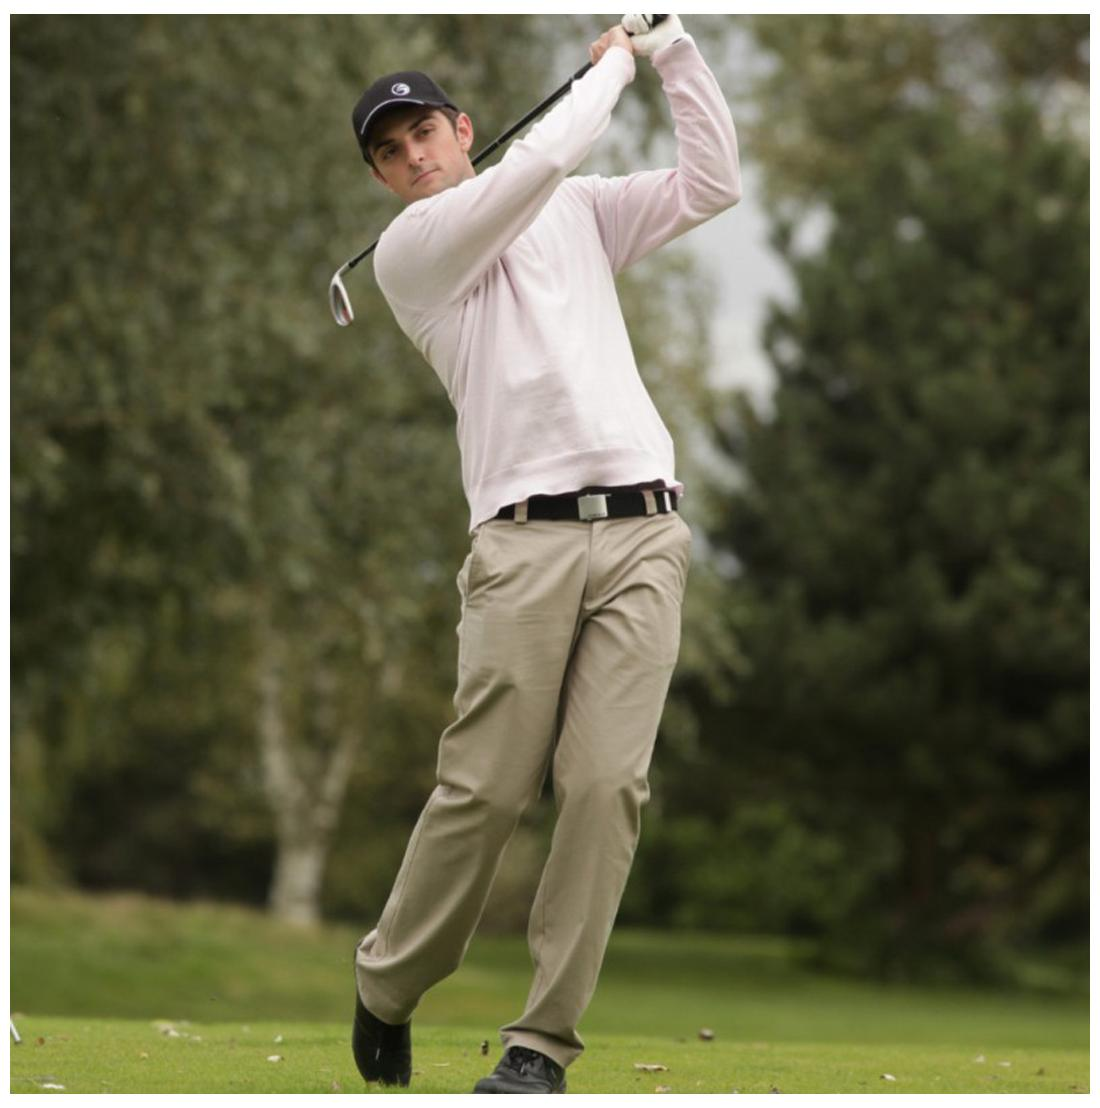 cb5059c6802c Buy Inesis Golf Trousers Online at Low Prices in India - Paytmmall.com